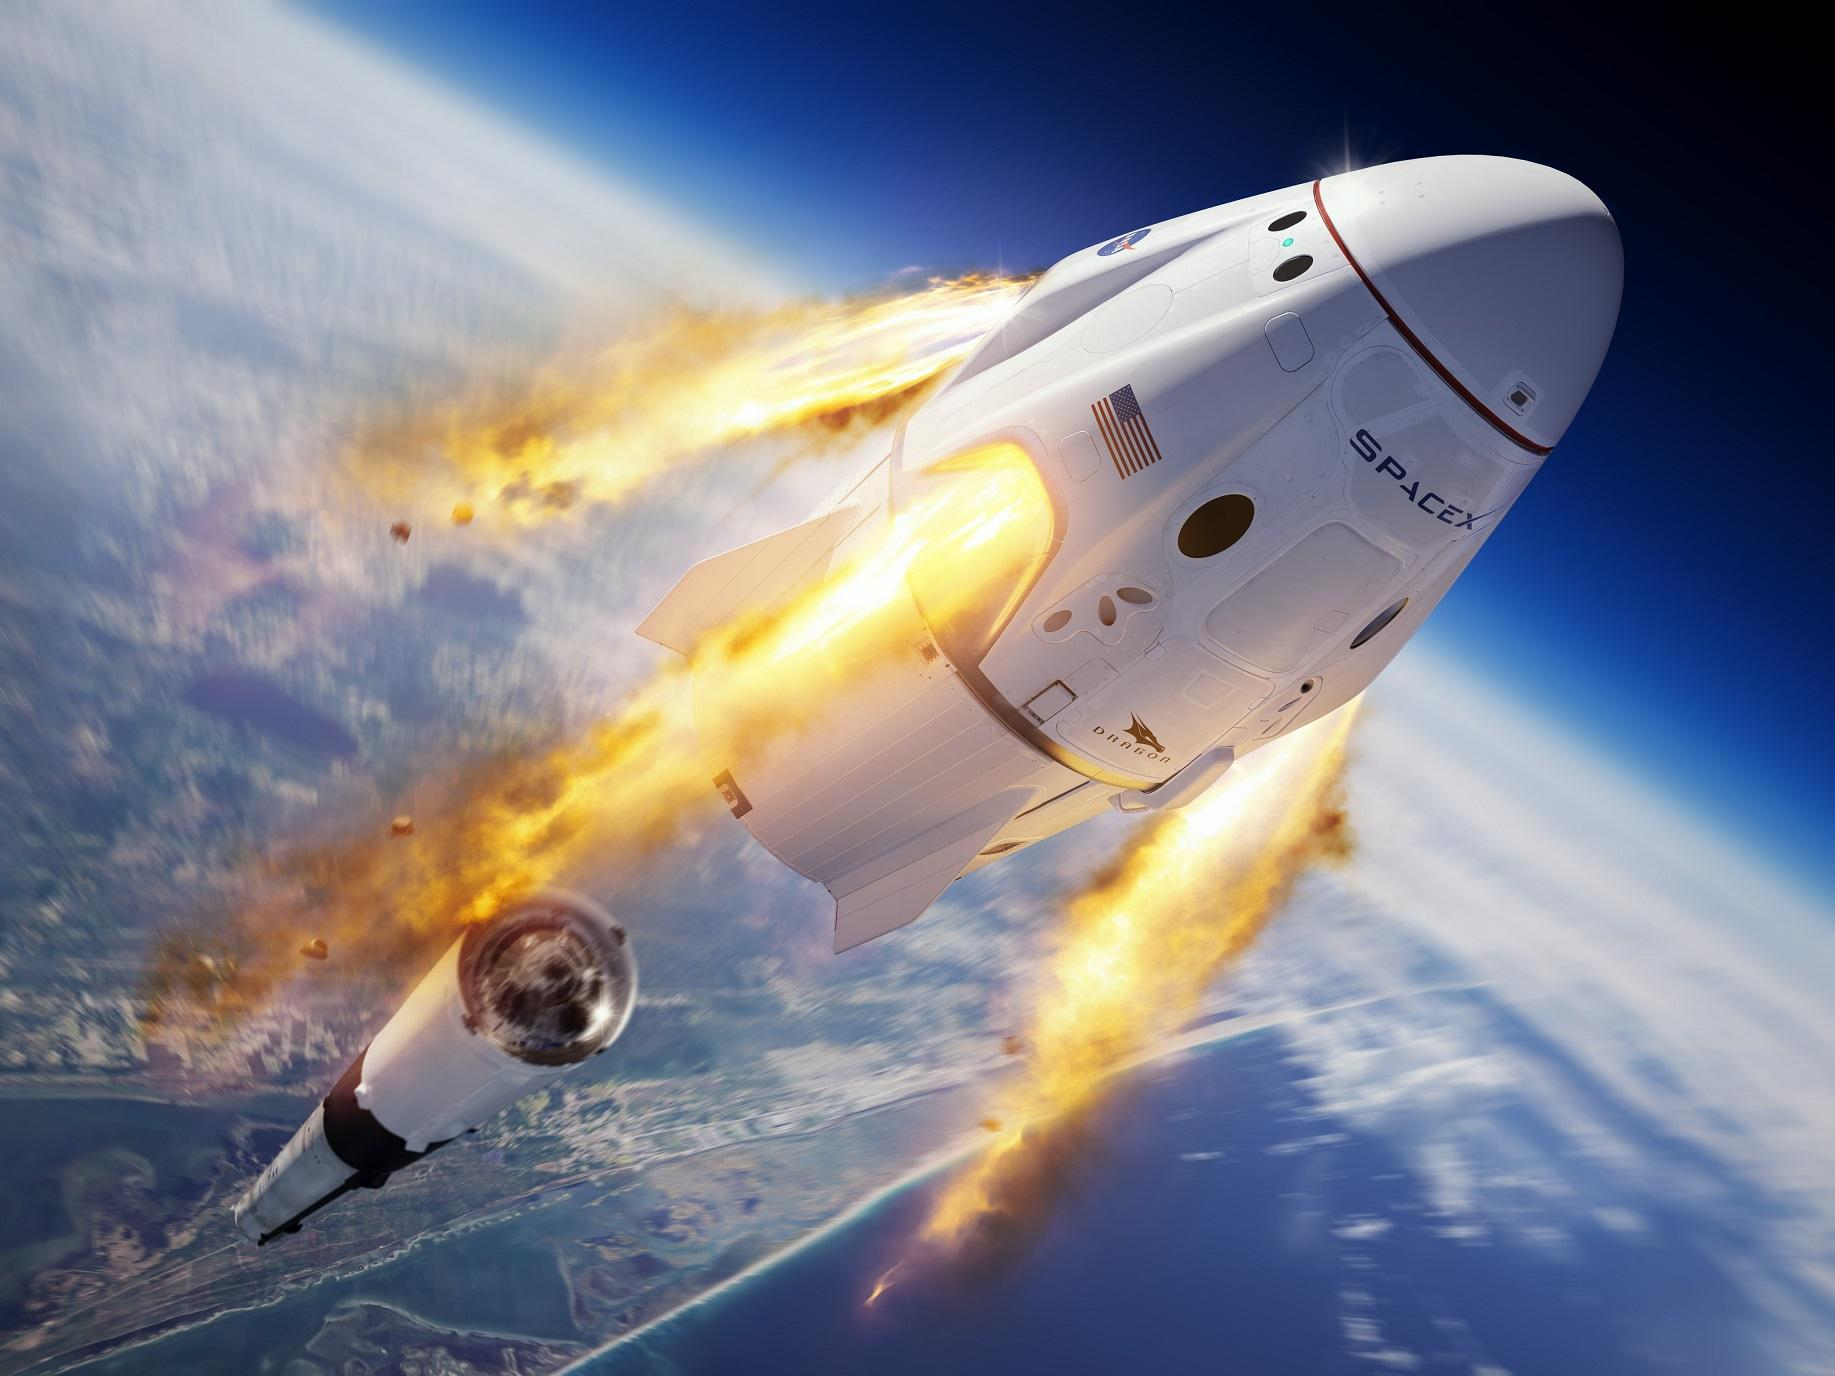 SpaceX Nasa launch: How to watch Crew Dragon capsule in skies above the UK